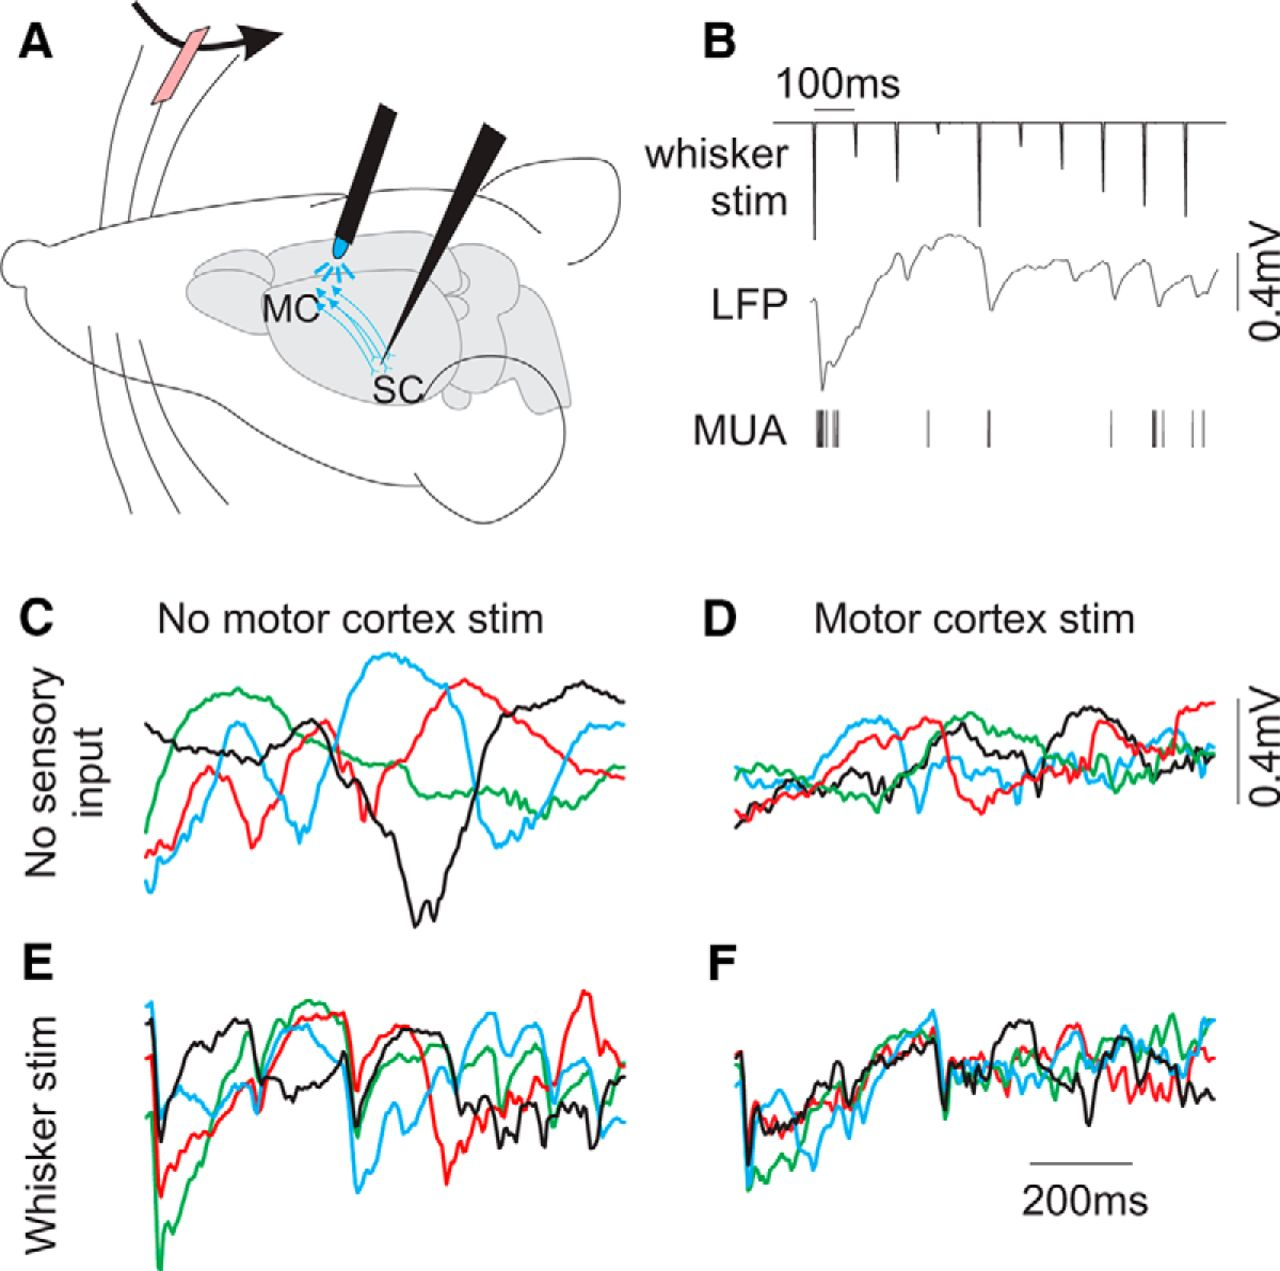 Simulating Cortical Feedback Modulation As Changes In Excitation And